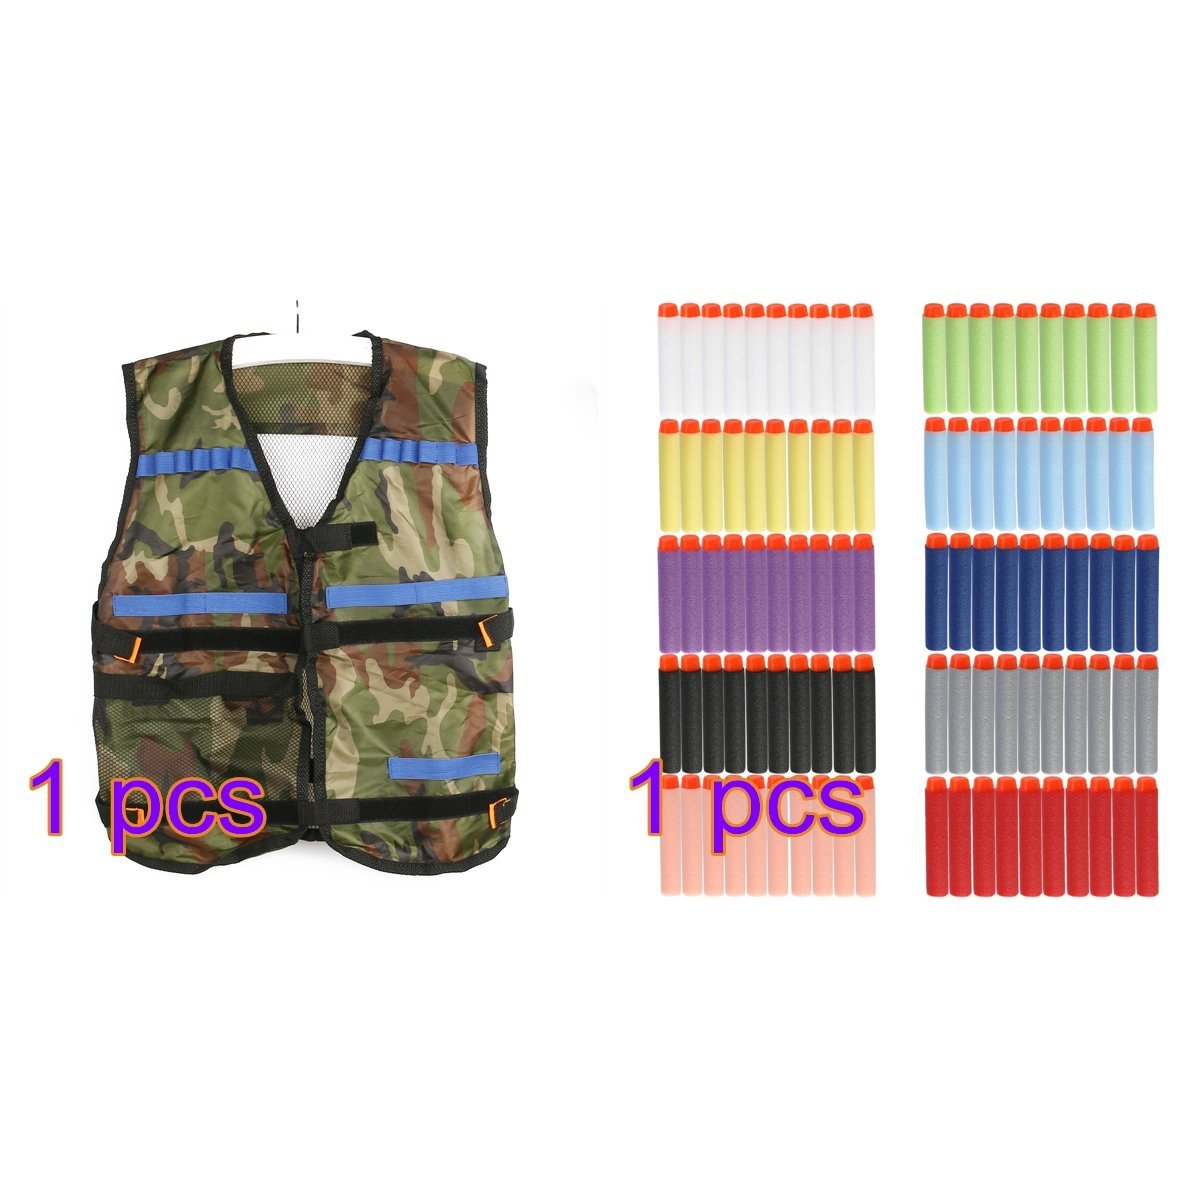 Tinksky 1pcs Tactical Vest Adjustable for Nerf N-Strike Elite Battle Game gifts for men (Camouflage) + 100pcs N-Strike Elite Dart Refill Pack, 7.3cm/150g Blasters Kid Toy Gun Play Game (10 color)